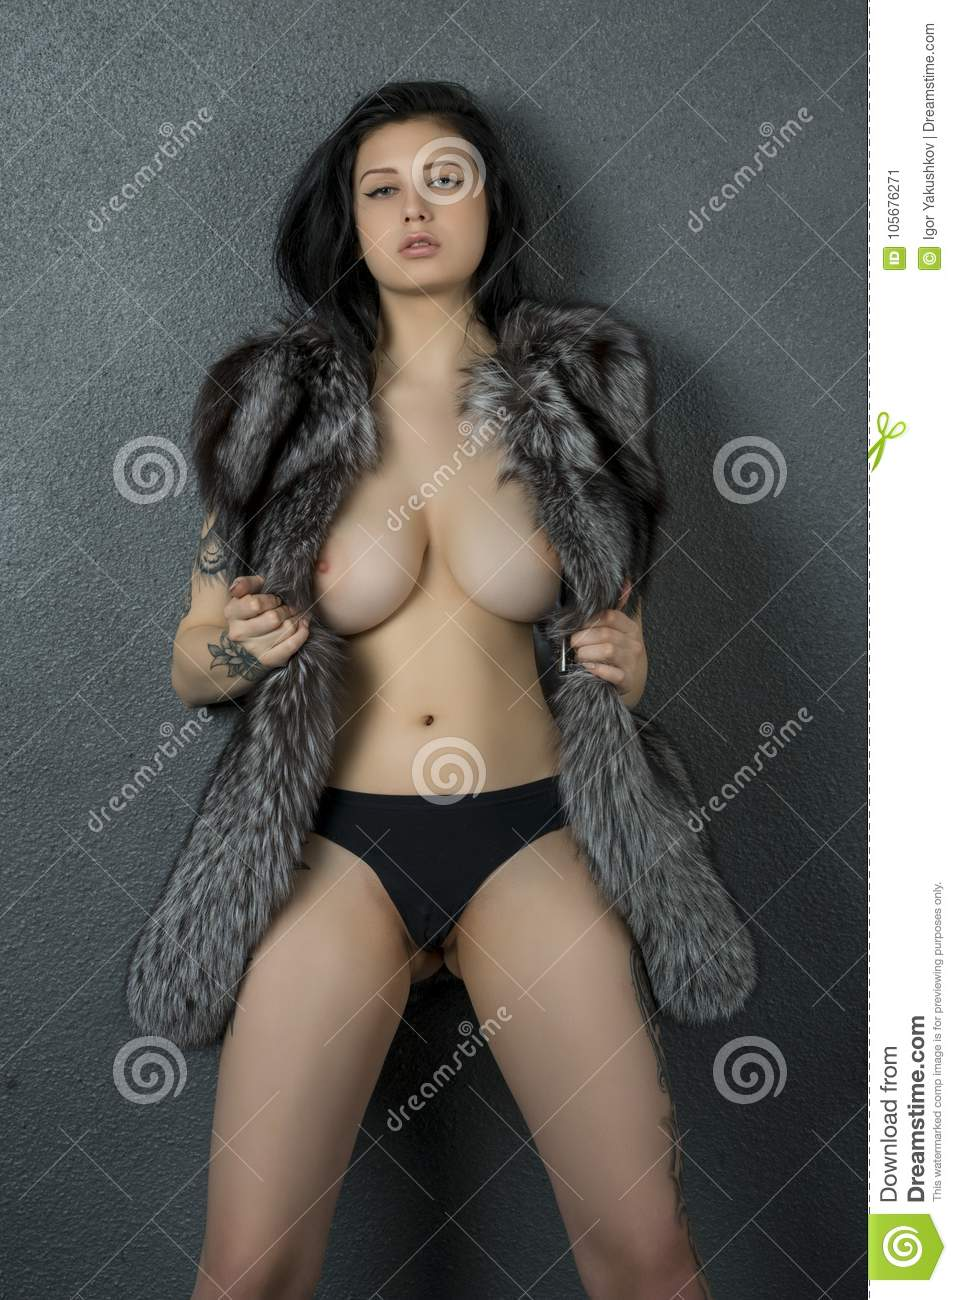 Naked girl fur coat simply matchless